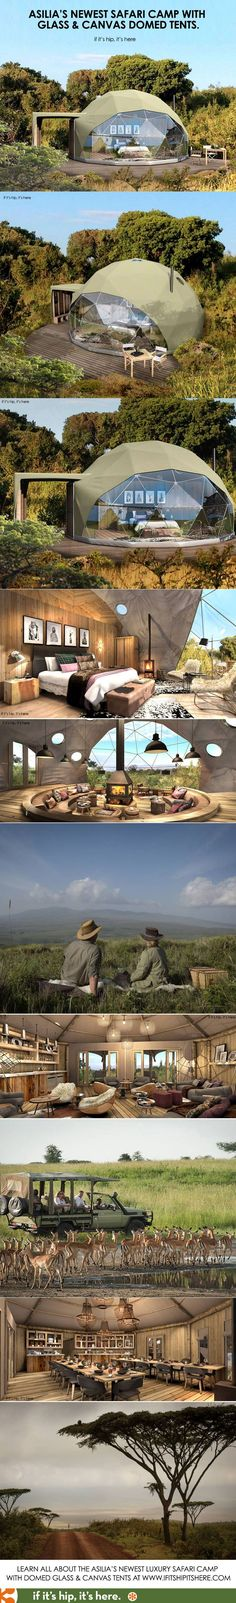 nice Now, THIS is the way to Safari! learn more at www.ifitshipitshe...... by http://www.danaz-homedecor.xyz/modern-home-design/now-this-is-the-way-to-safari-learn-more-at-www-ifitshipitshe/